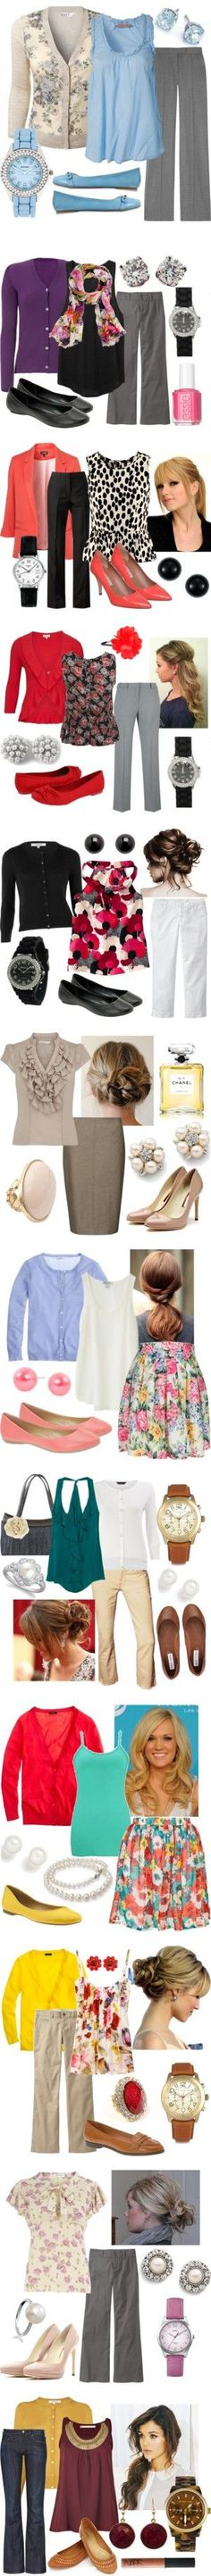 "cute ideas for springtime ""Teaching Outfits"" by qtpiekelso on Polyvore"